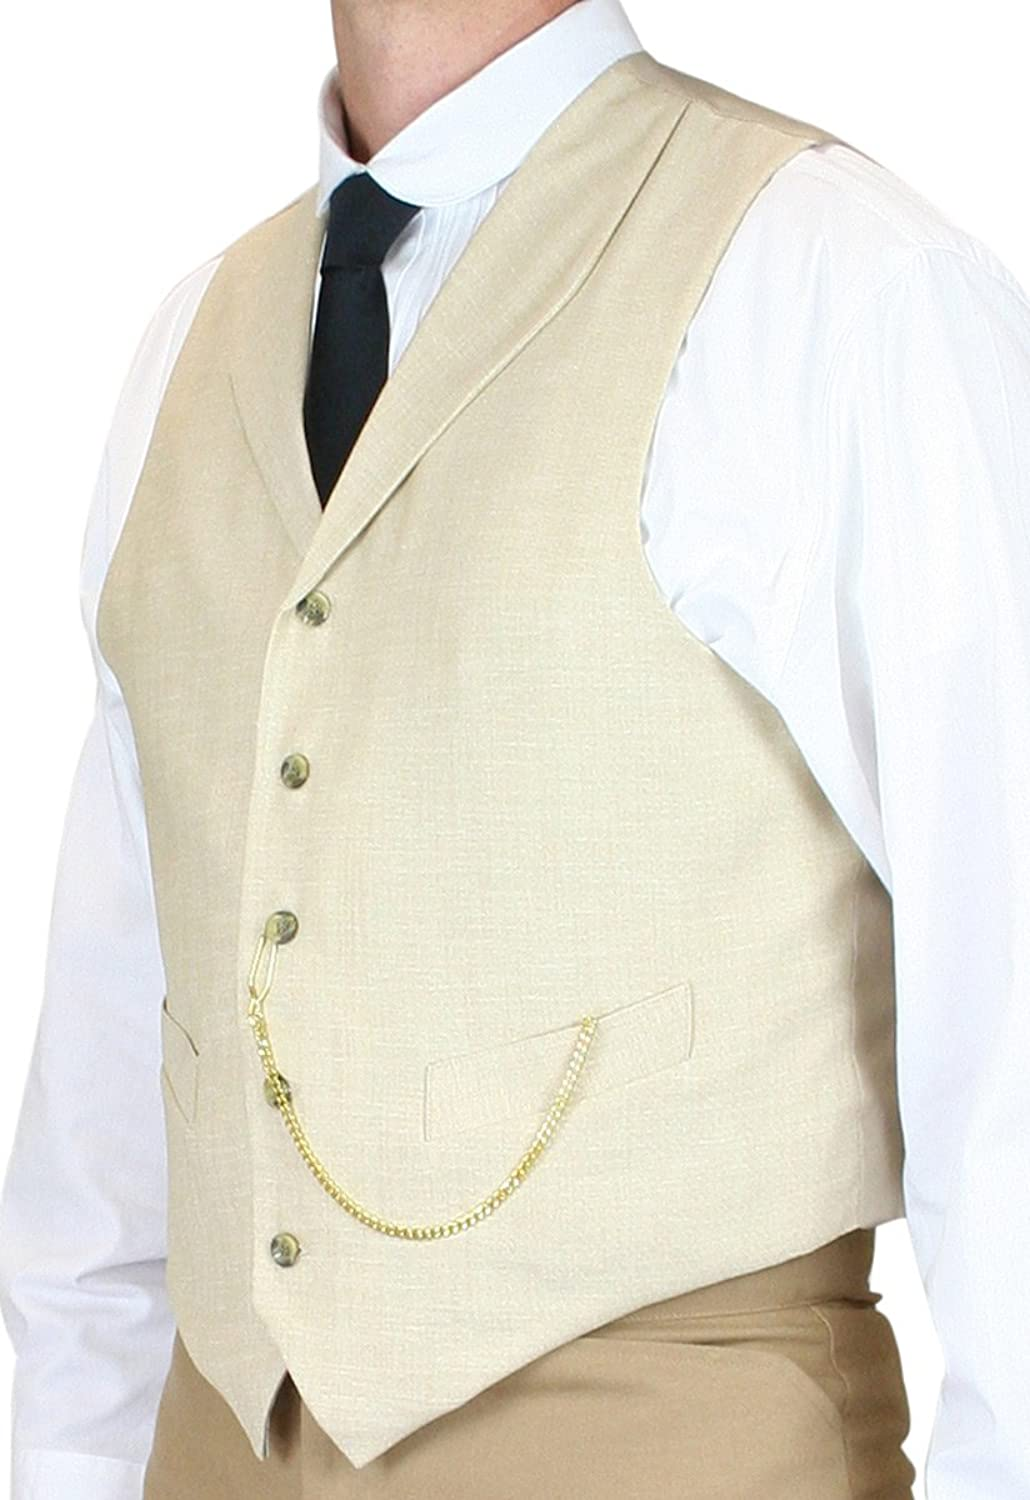 Edwardian Men's Fashion & Clothing Historical Emporium Mens Thatcher Linen Vest $59.95 AT vintagedancer.com